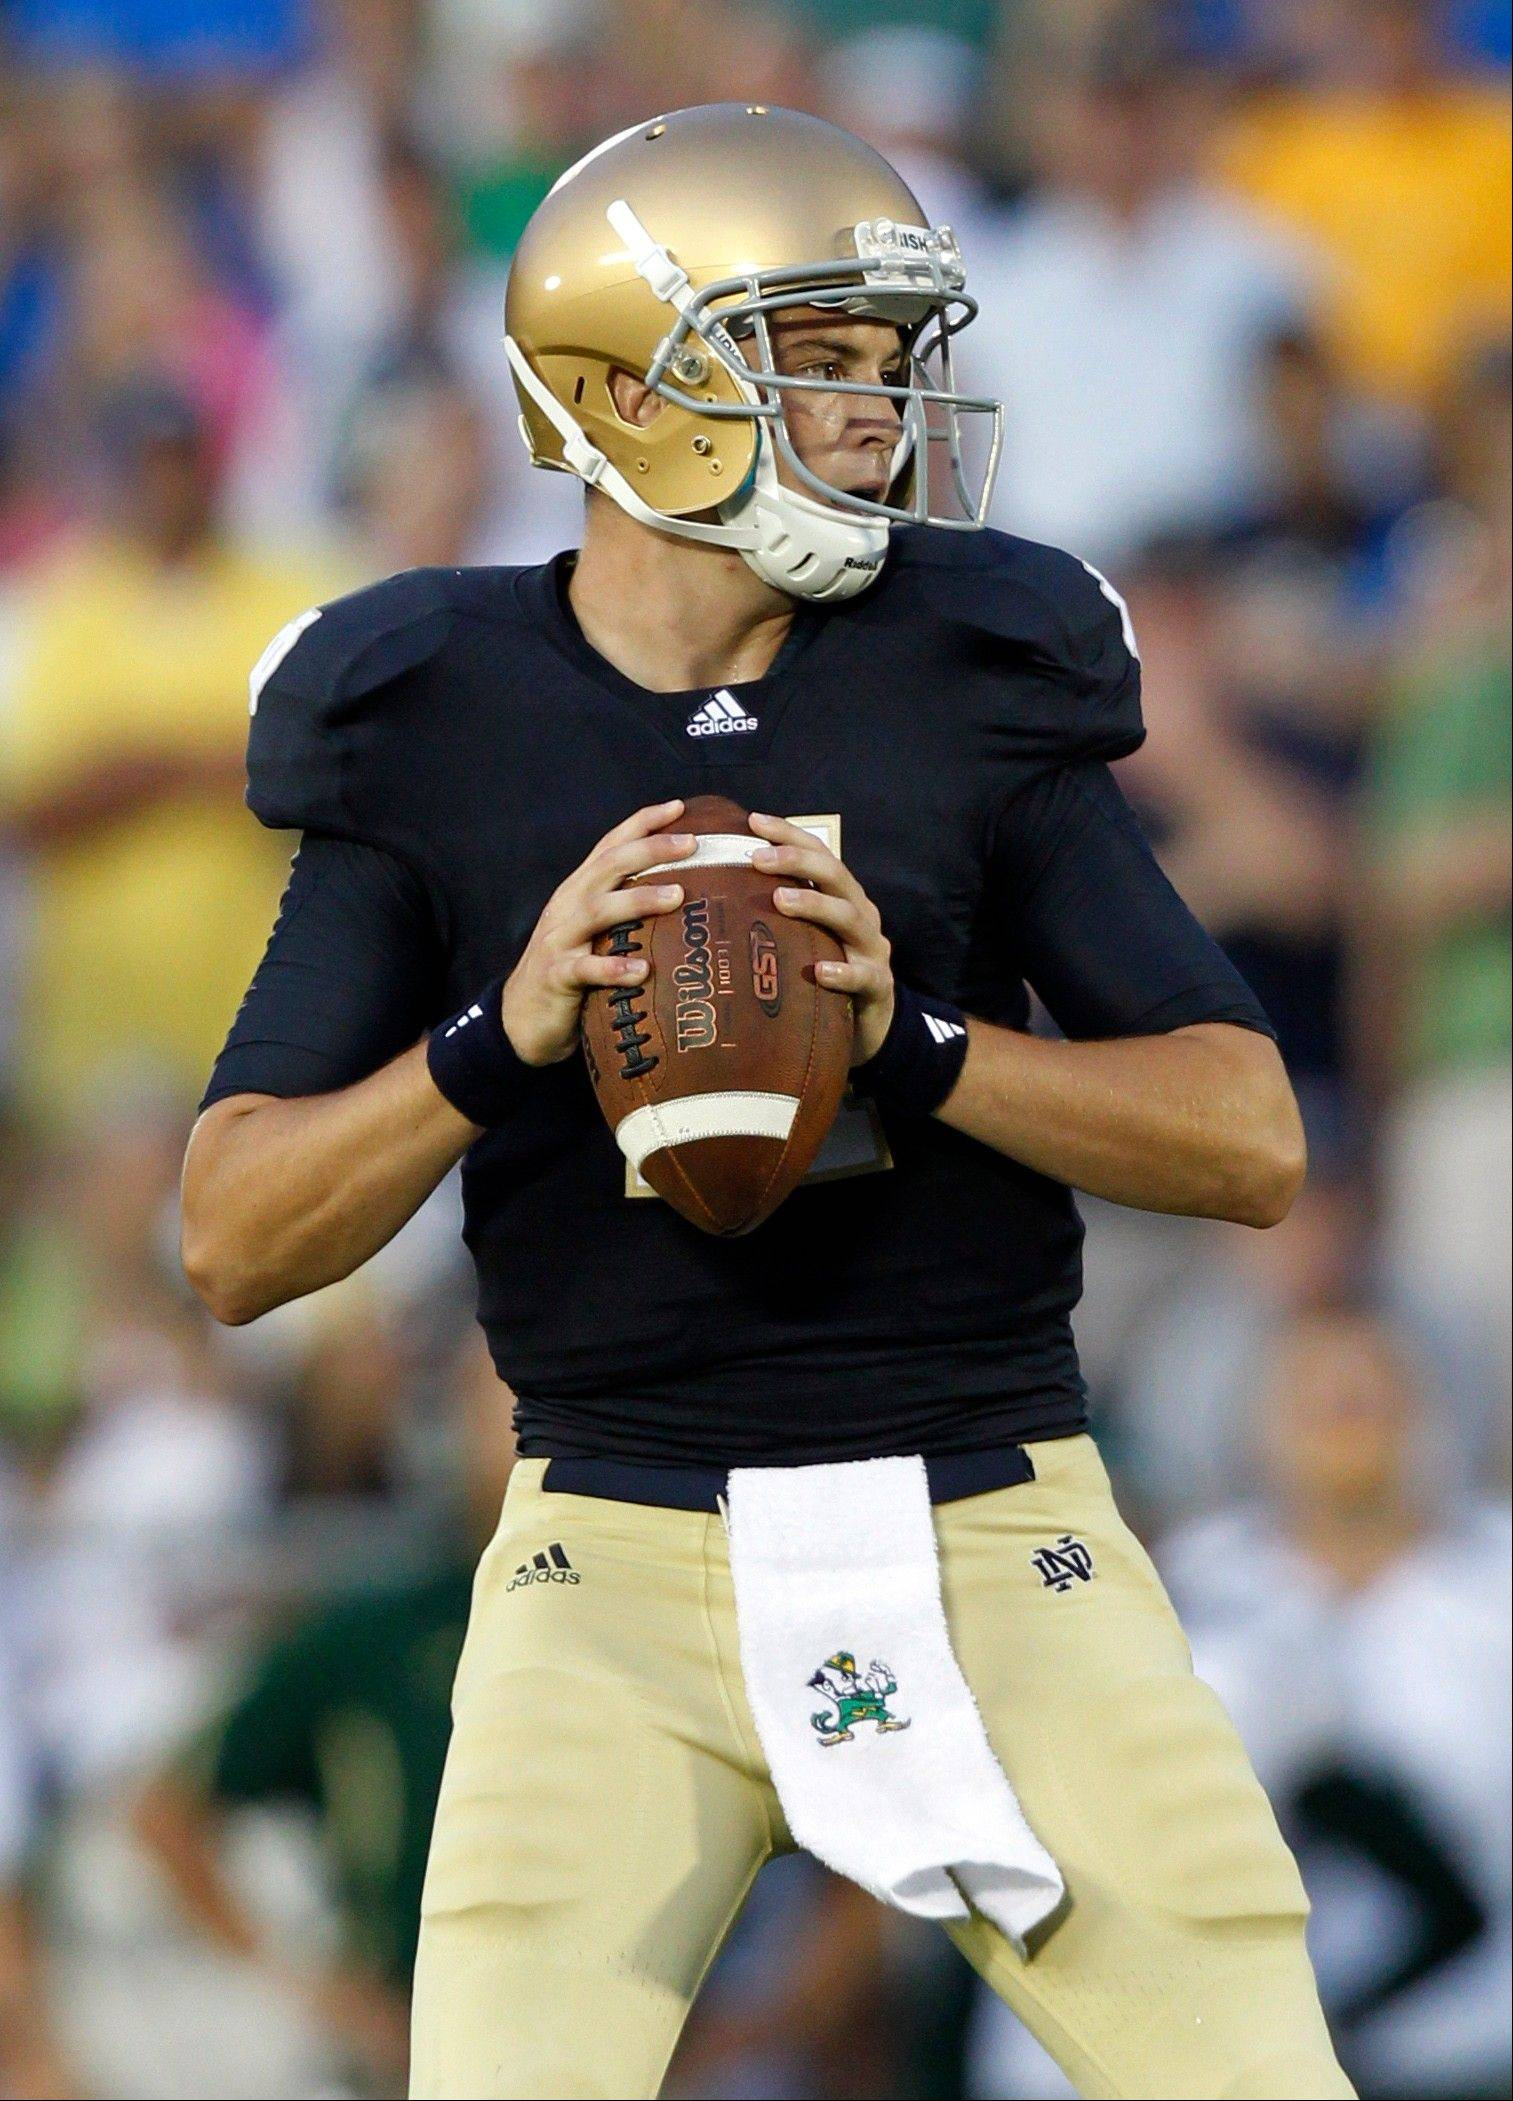 Notre Dame quarterback Tommy Rees will be the starting quarterback Saturday night against Michigan.